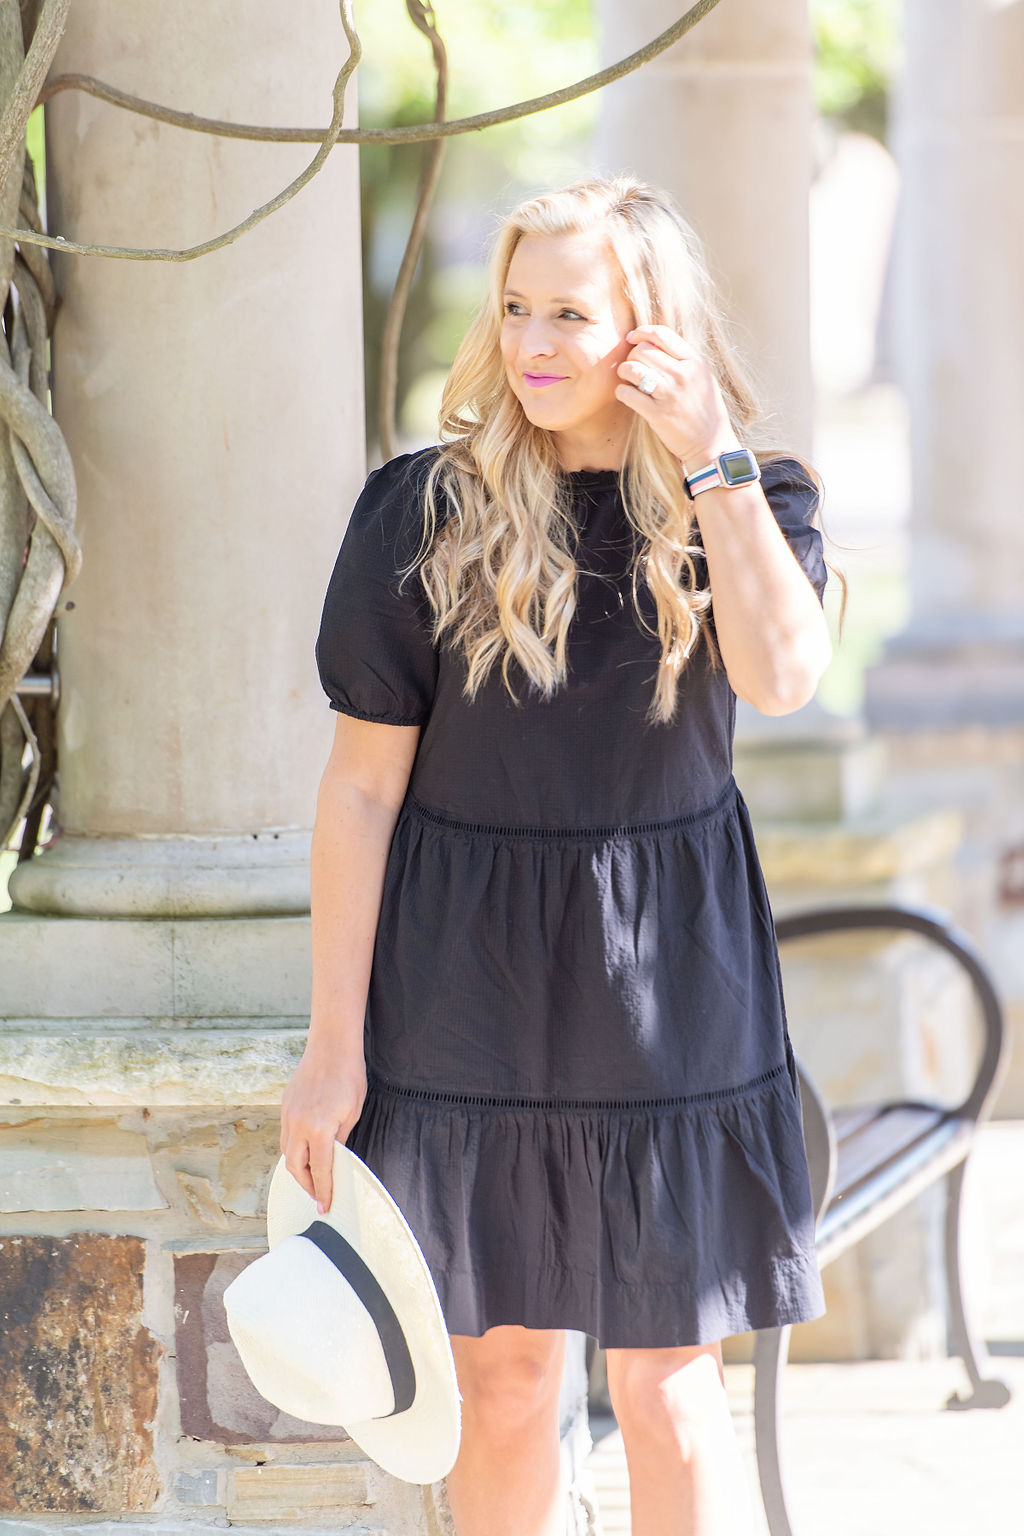 Little Black Dresses by popular Houston fashion blog, The House of Fancy: image of a woman wearing a black baby doll dress, white fedora hat, and studded strap sandals.